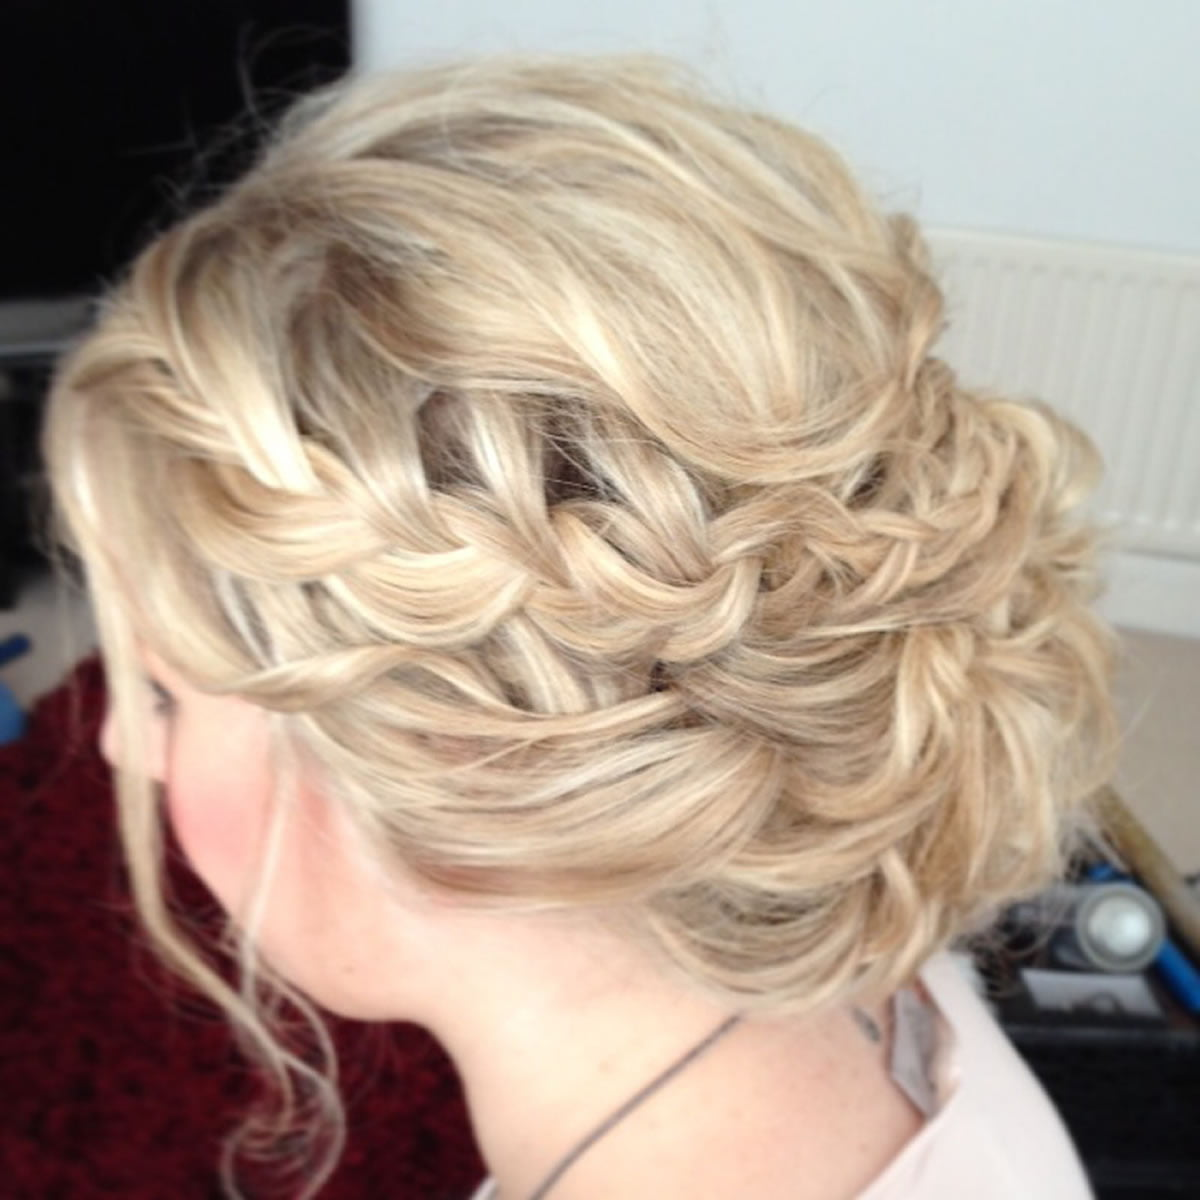 Need Bridal Hair Inspiration We Have You Covered: 25 Very Stylish Soft Braided Hairstyles Ideas 2018-2019